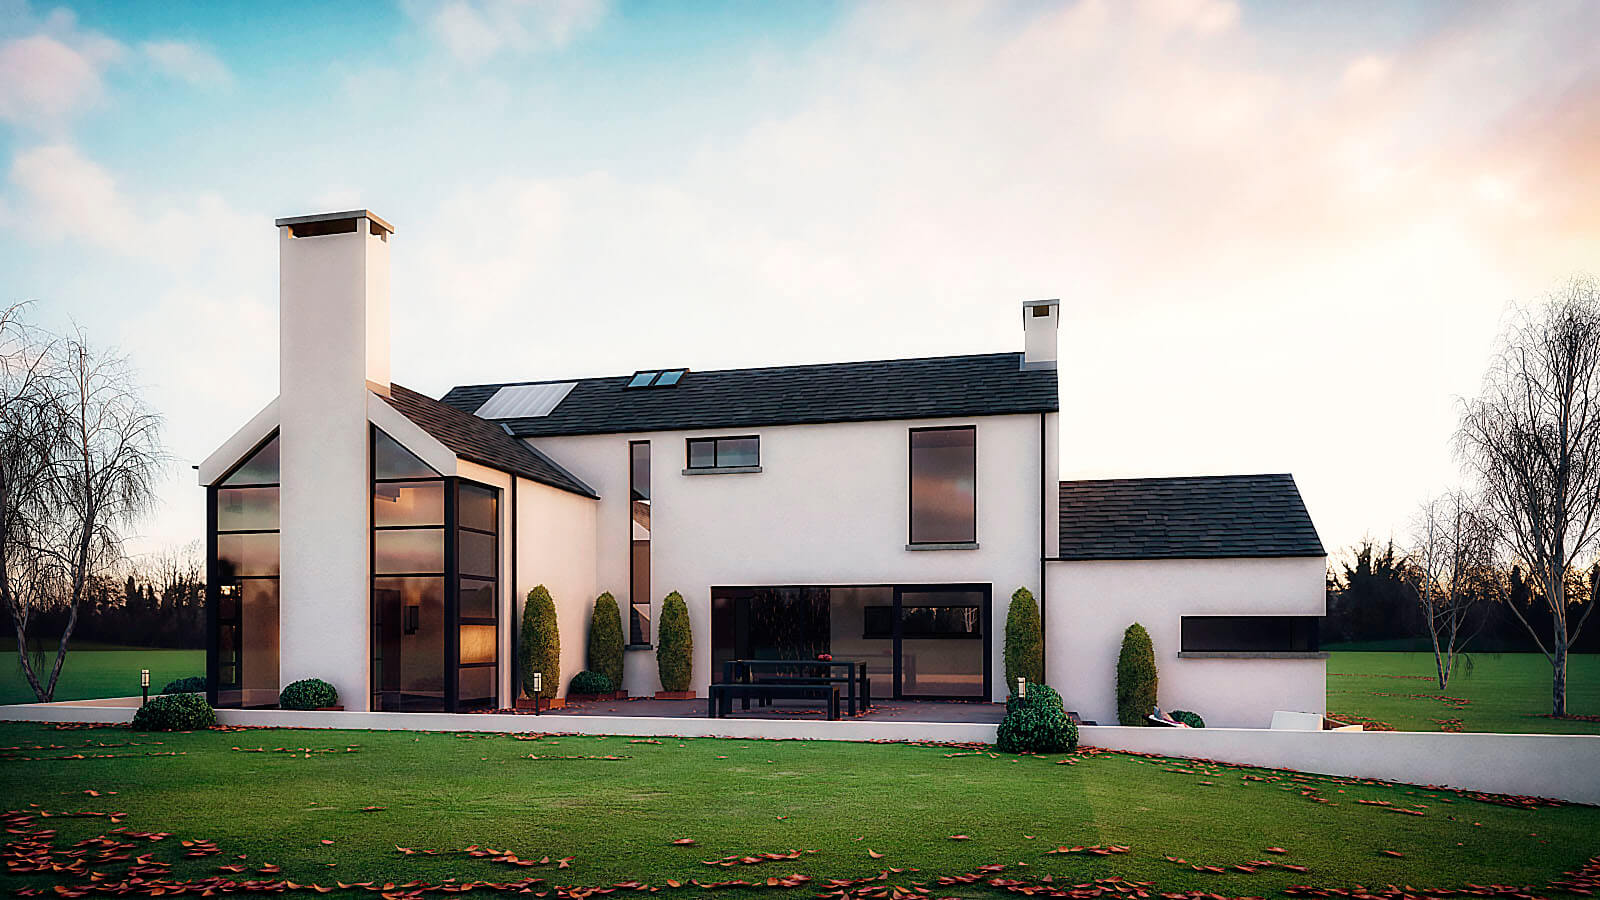 11 essential tips for building a house in ireland from - Tips for building a new home ...